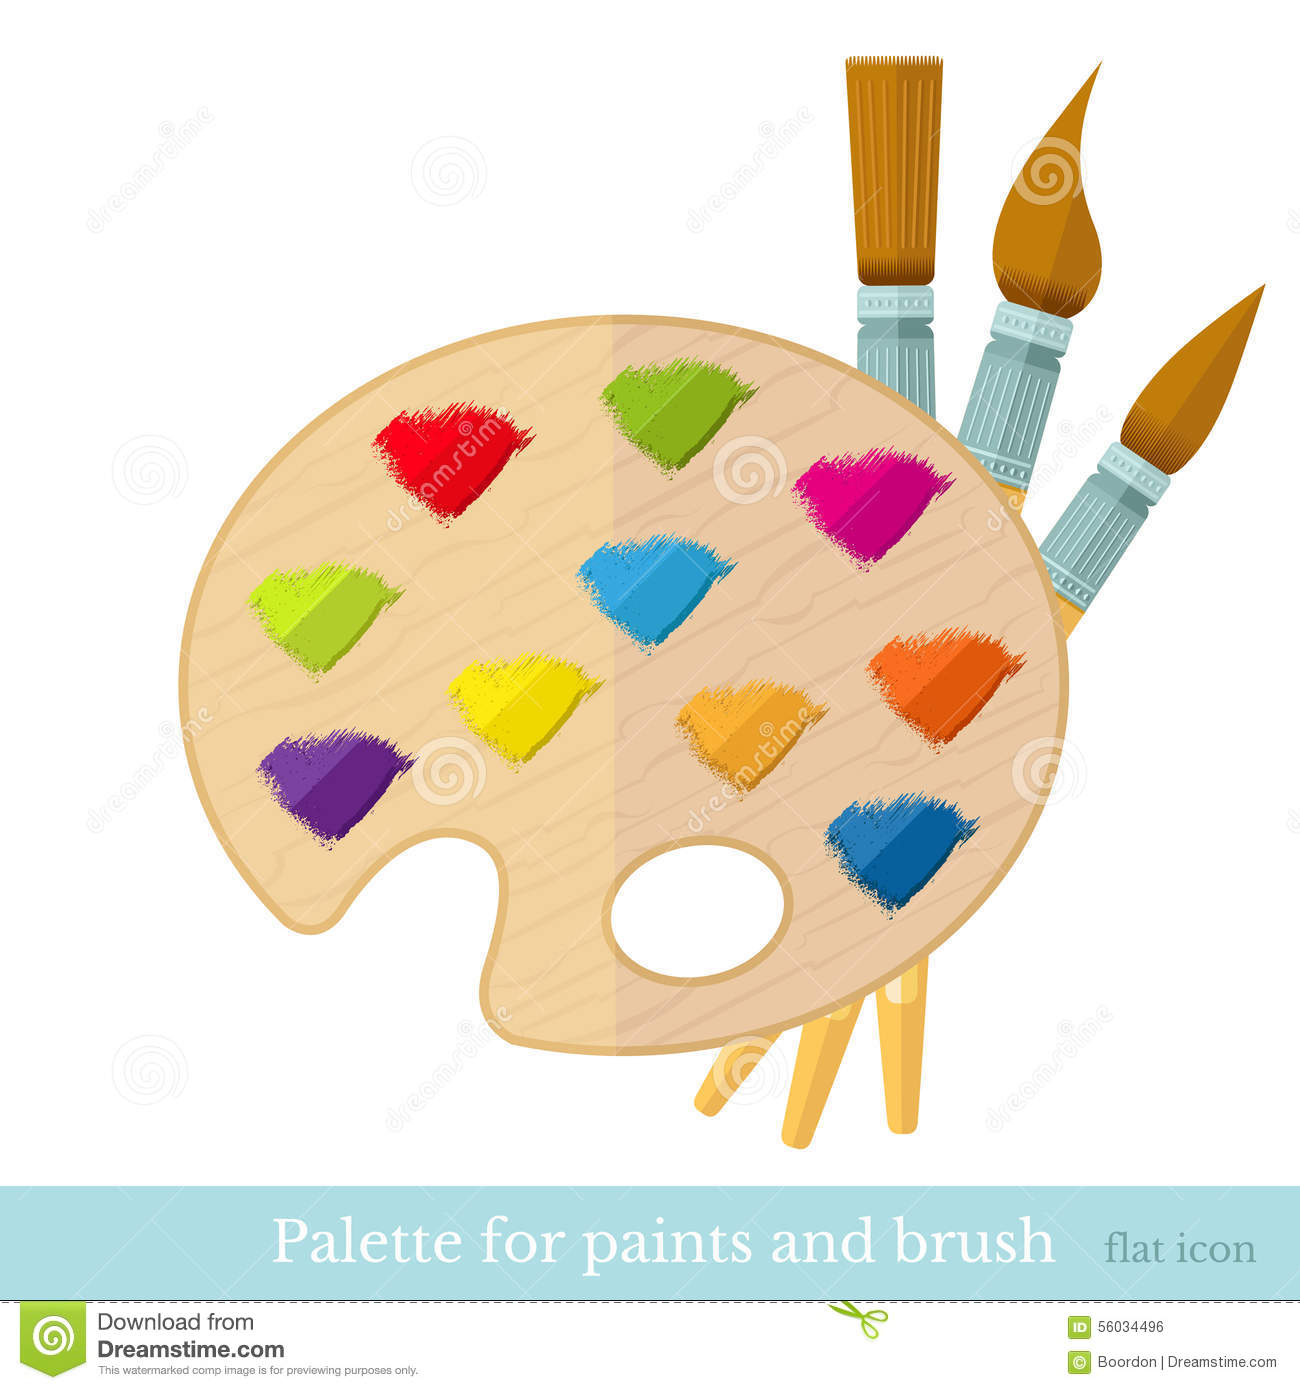 flat icon paintbrushs with all colour brushstroke on palette